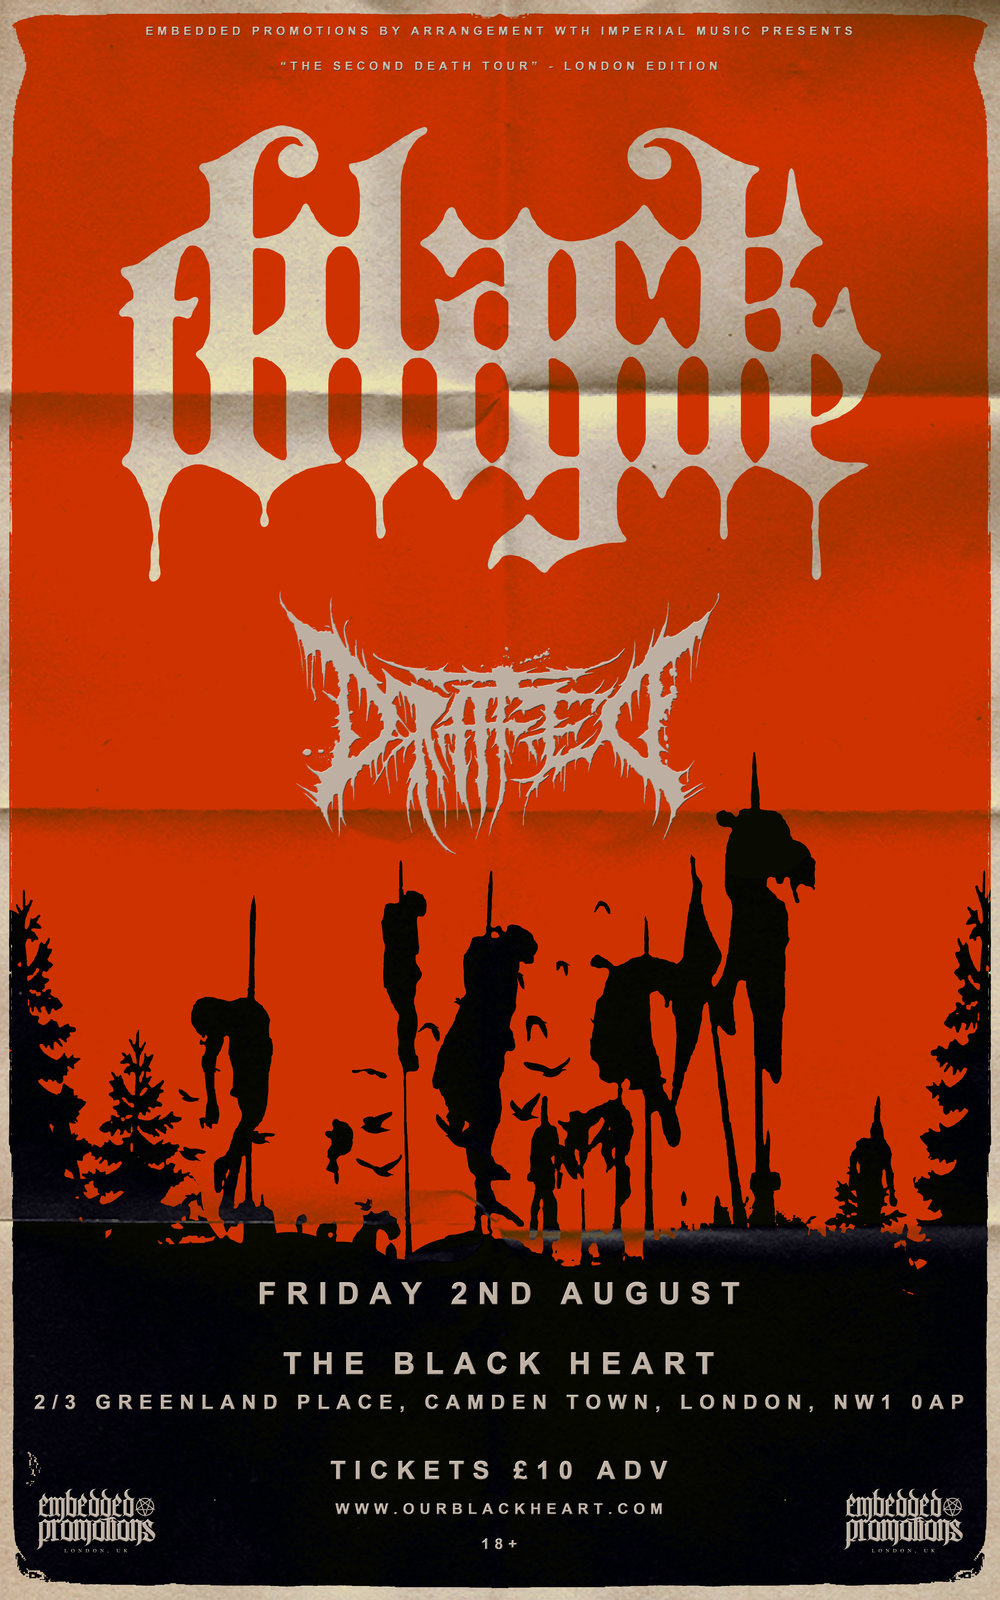 SECOND DEATH TOUR Flyer.jpg